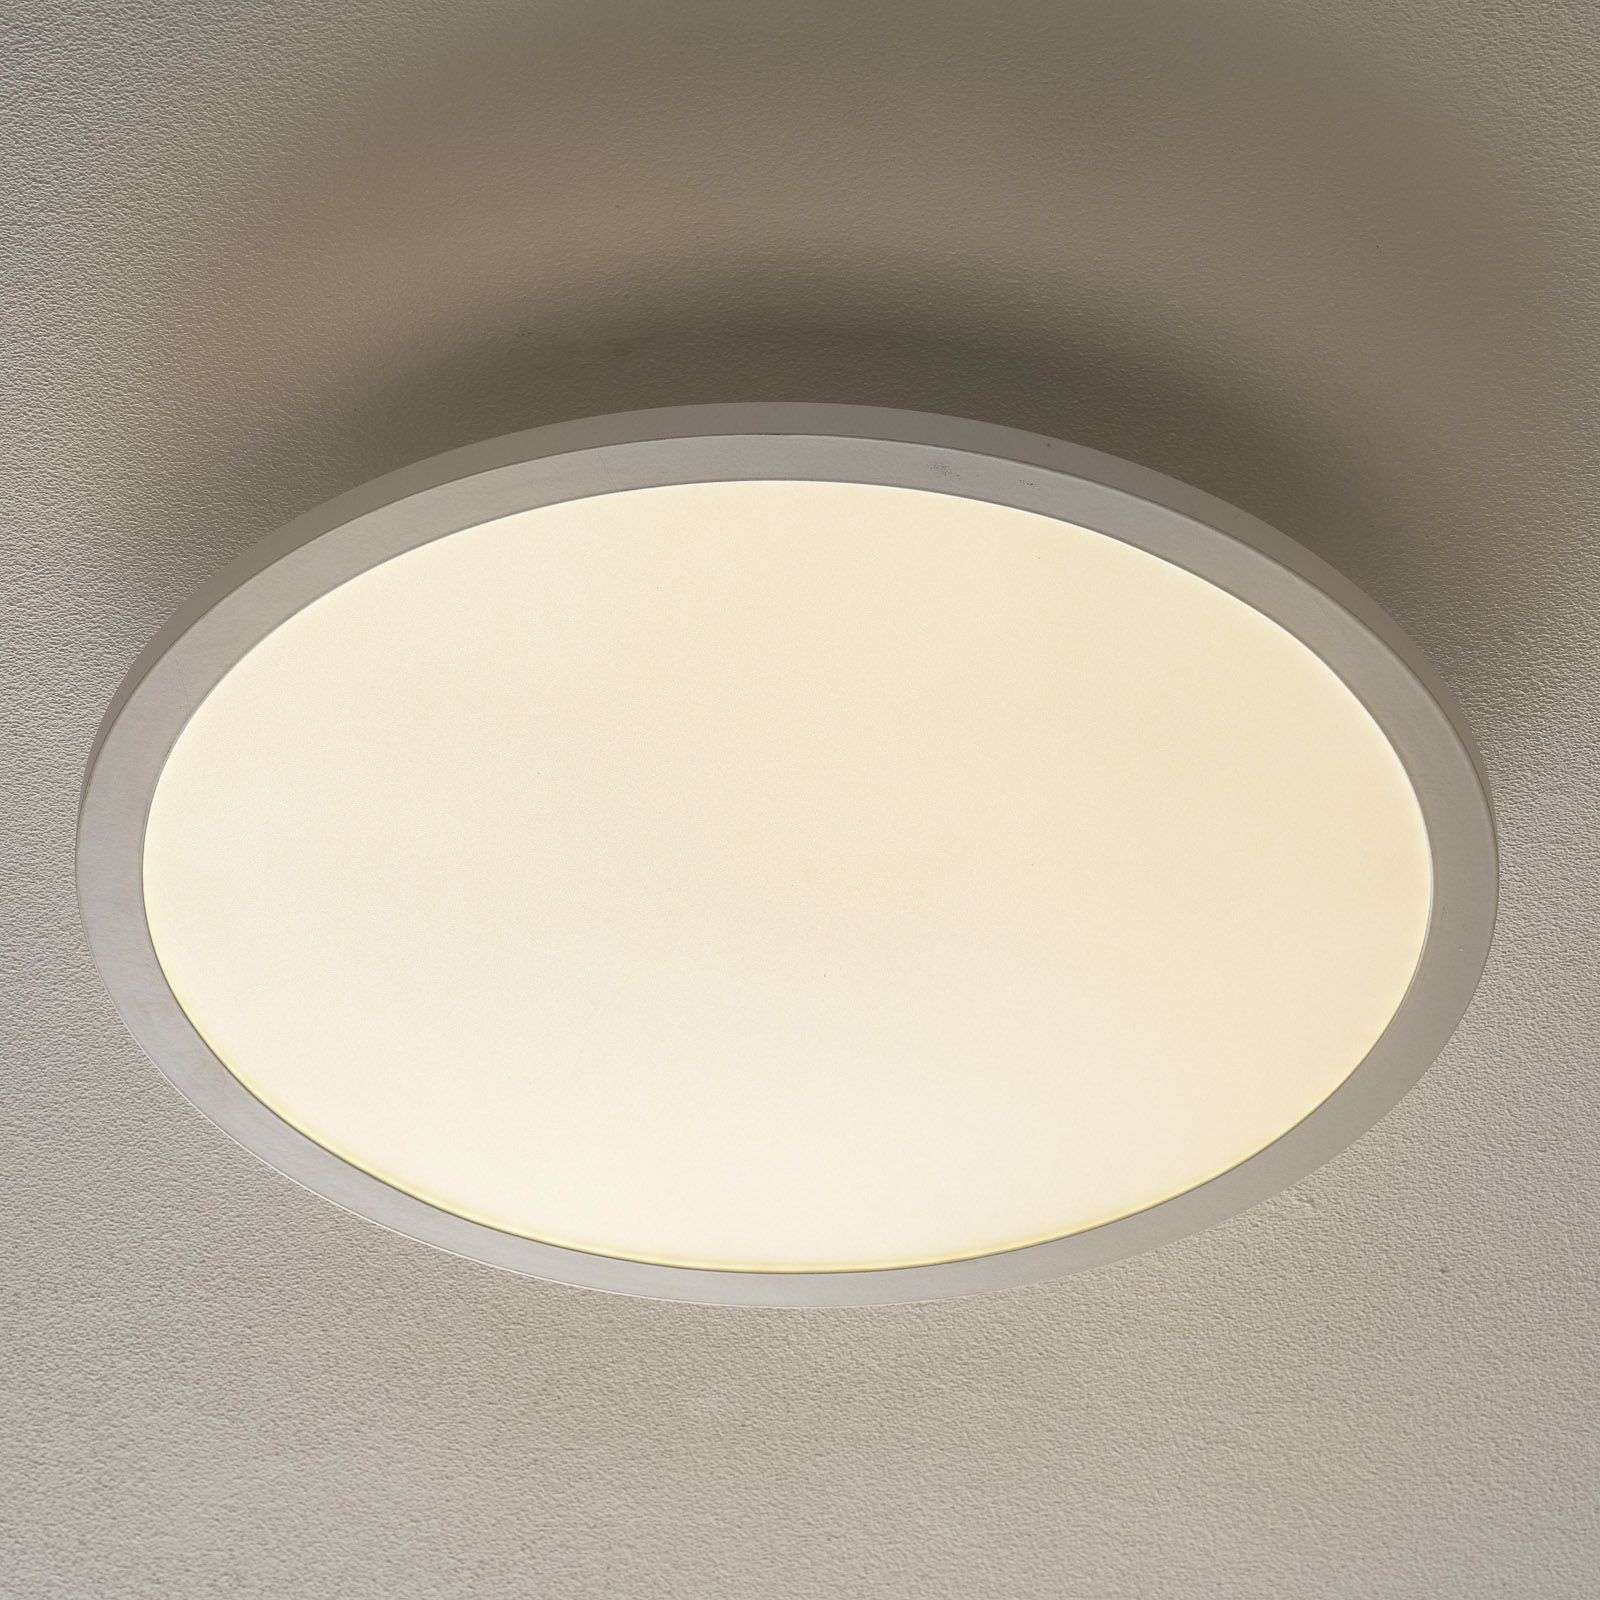 EGLO connect Sarsina-C LED plafondlamp, 45cm